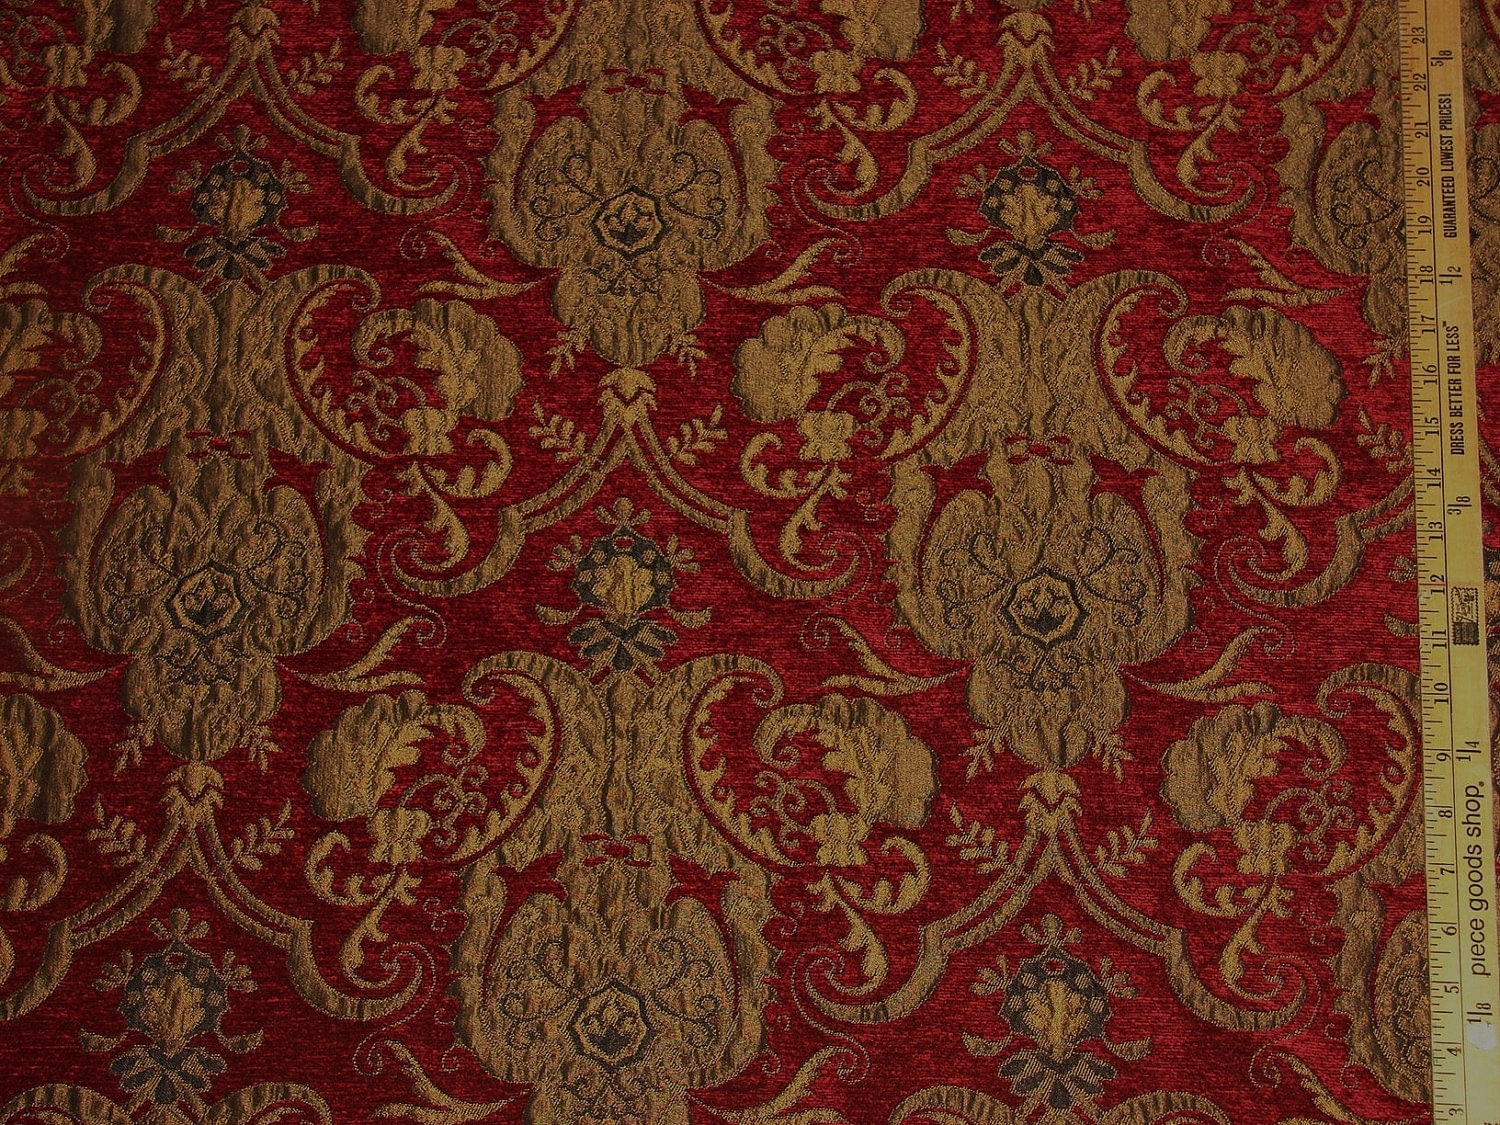 Heavy Weight Cut Red Velvet Damask Upholstery Fabric 1 2 Yard